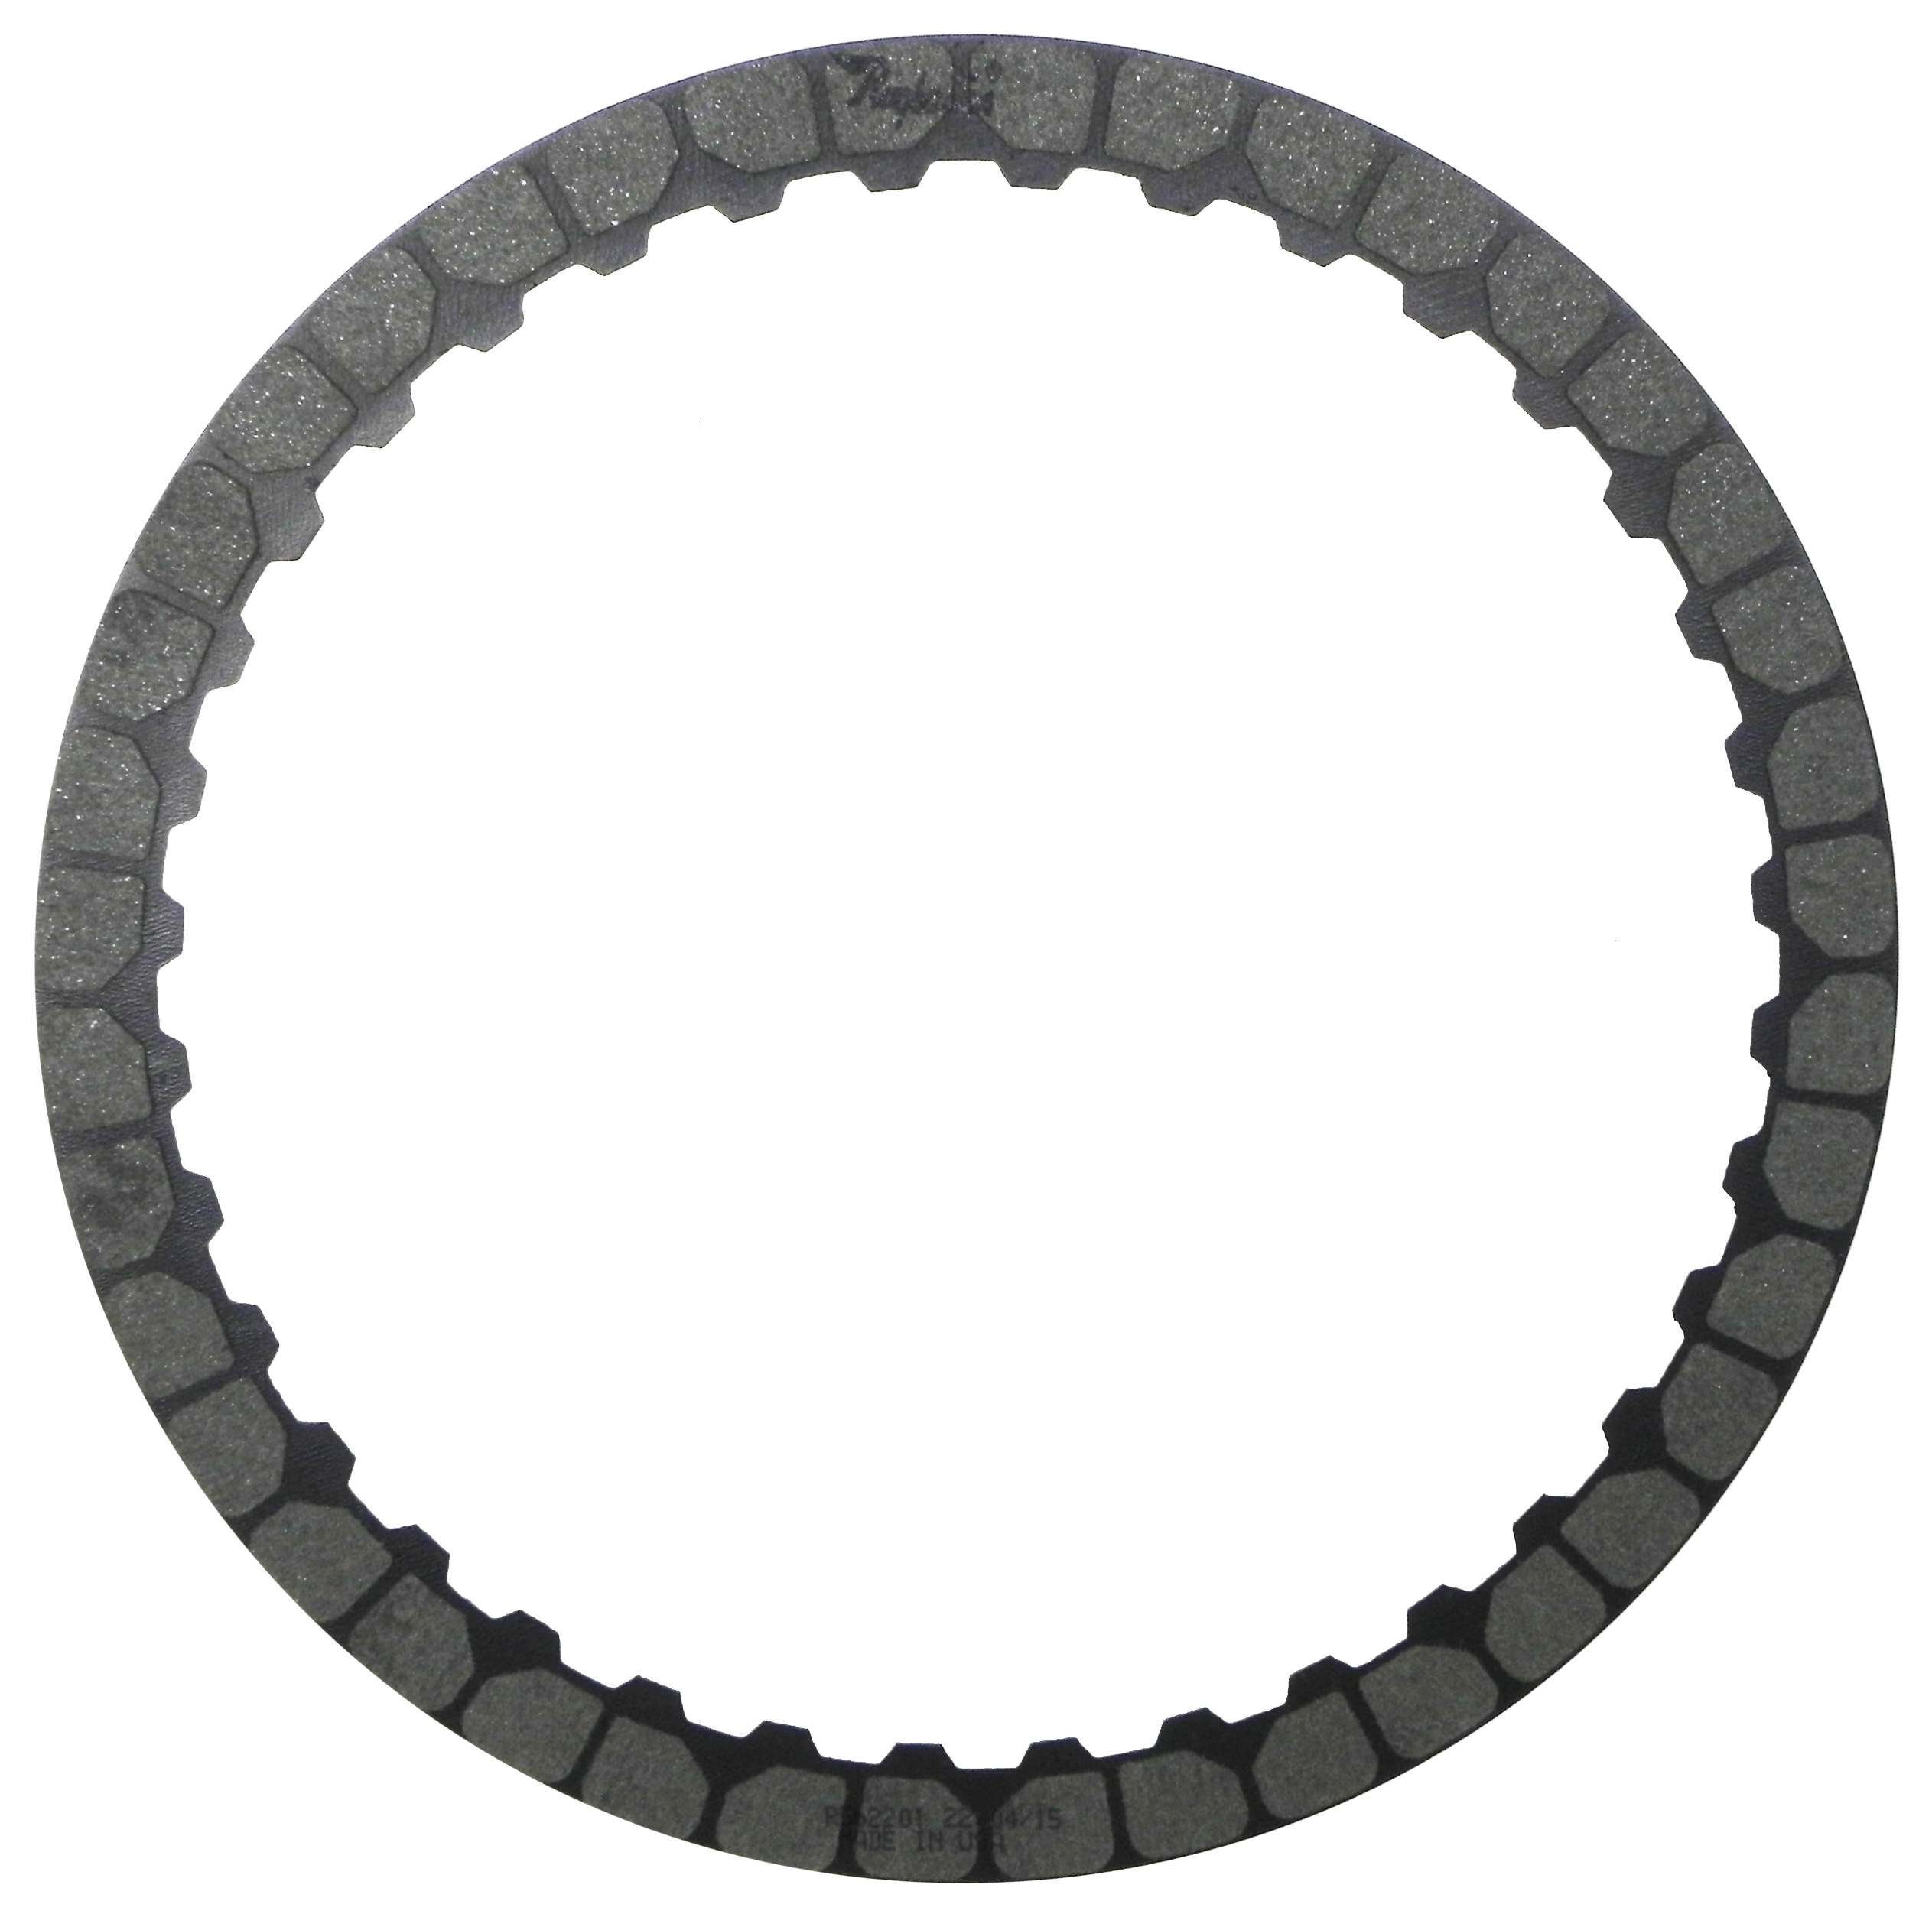 R562201 | 2007-ON Friction Clutch Plate High Energy 1st Brake High Energy